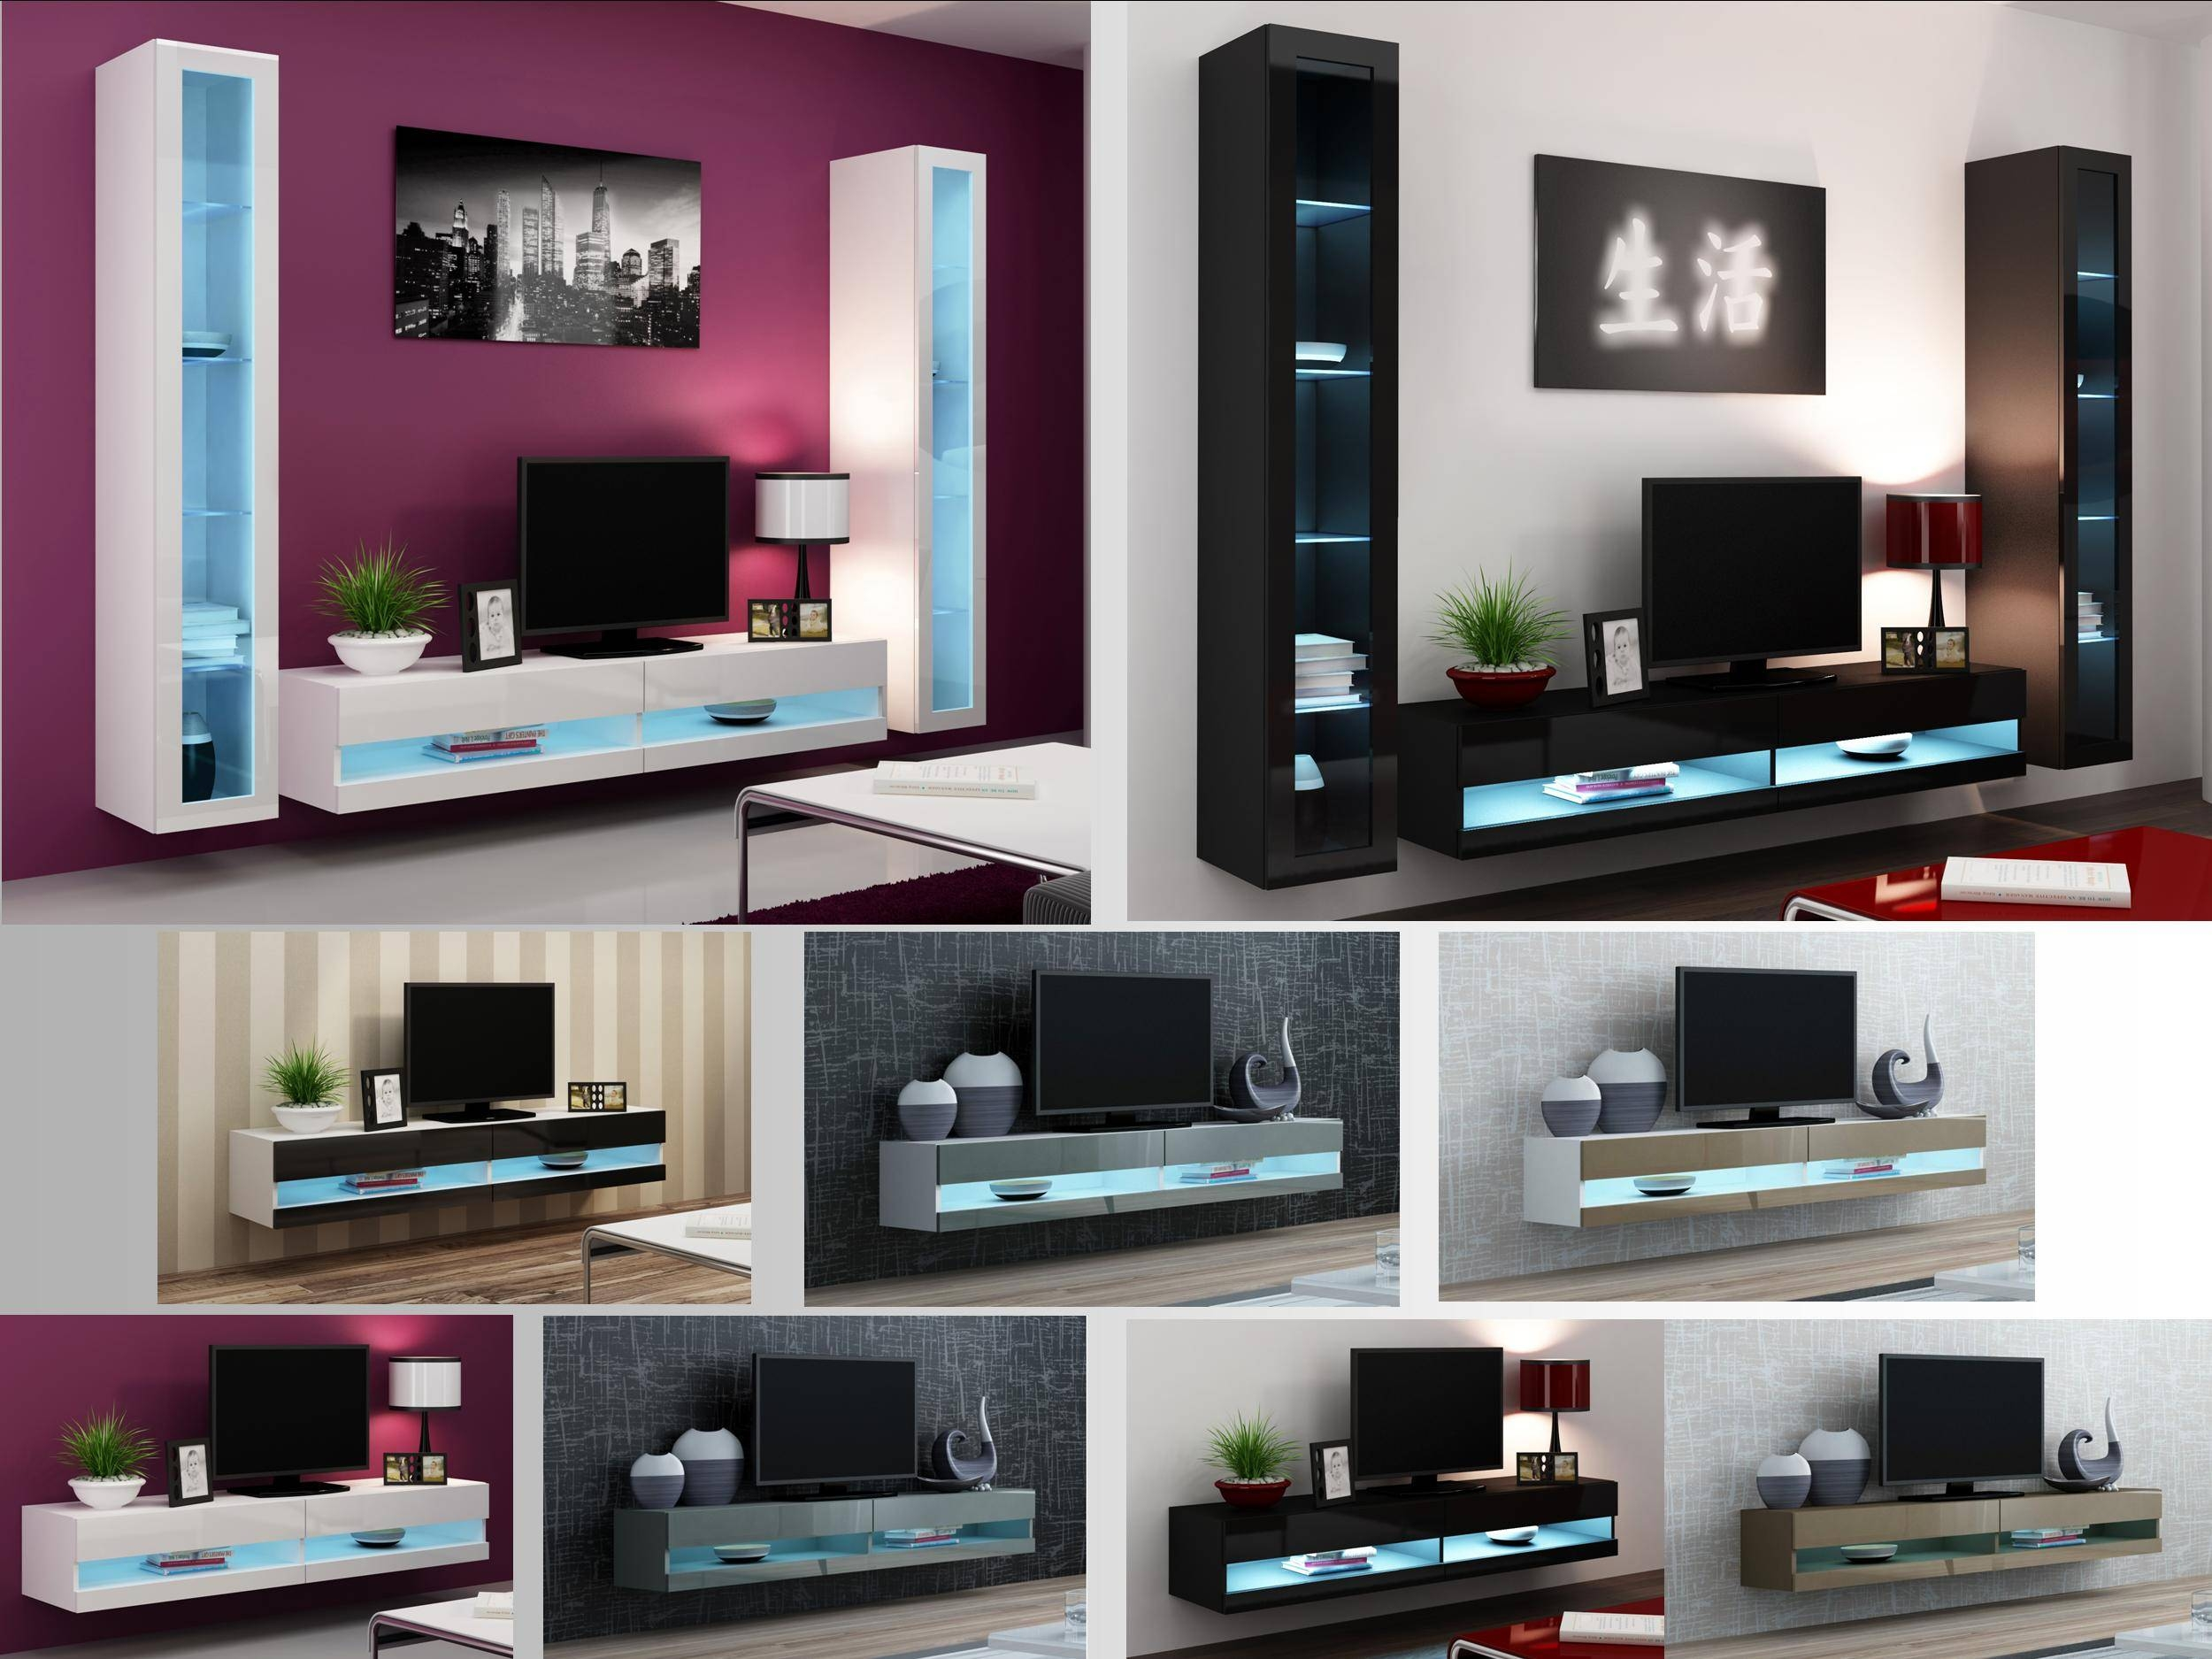 High Gloss Living Room Furniture - Tv Stand, Wall Mounted Cabinet within High Gloss Tv Cabinets (Image 8 of 15)